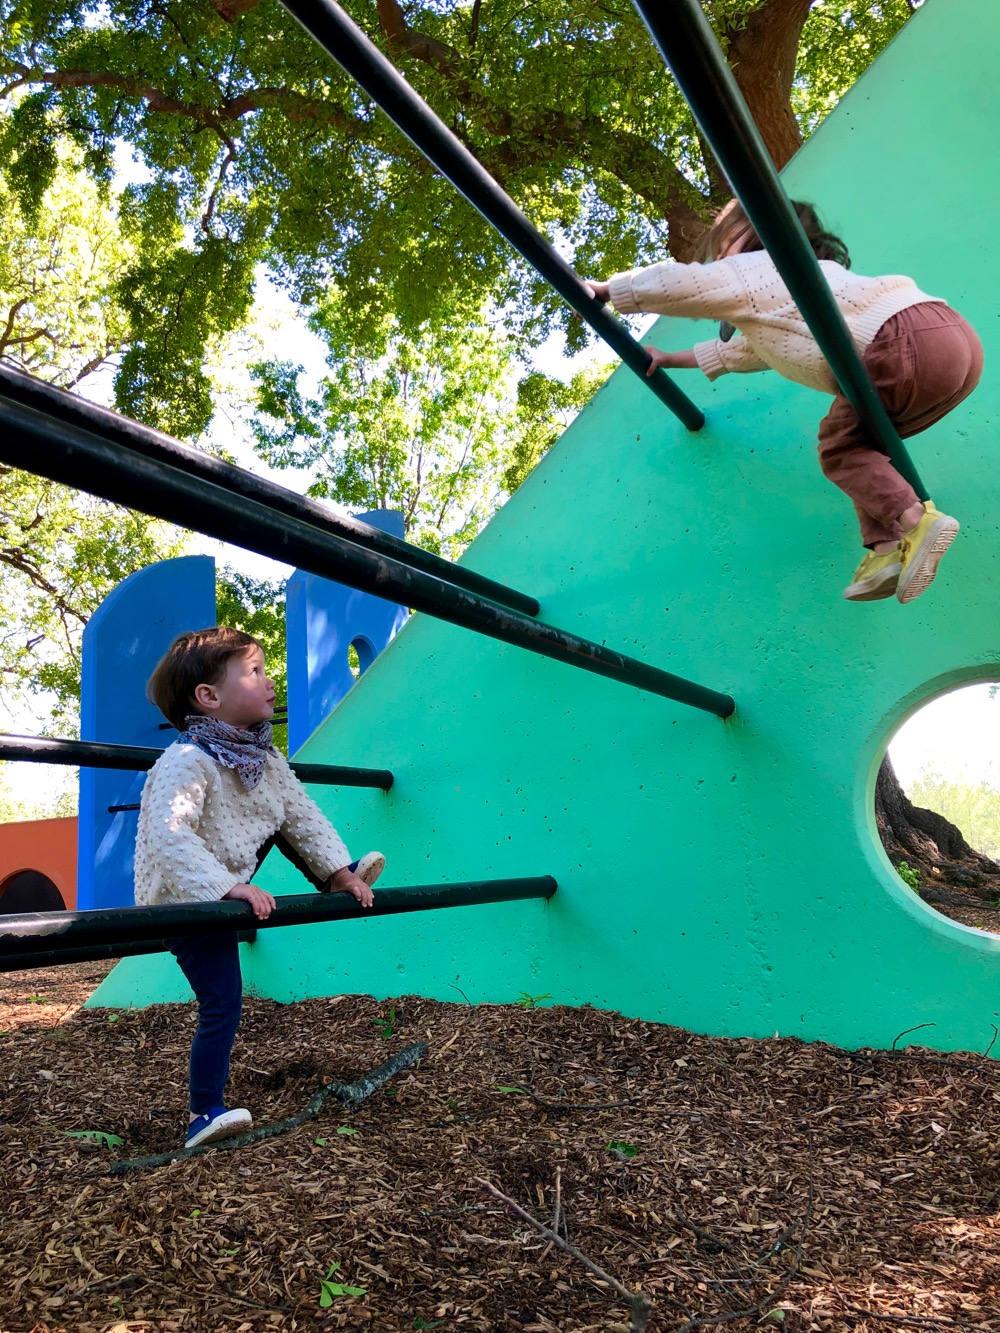 Two children climbing on the green structure at Noguchi's Playscapes